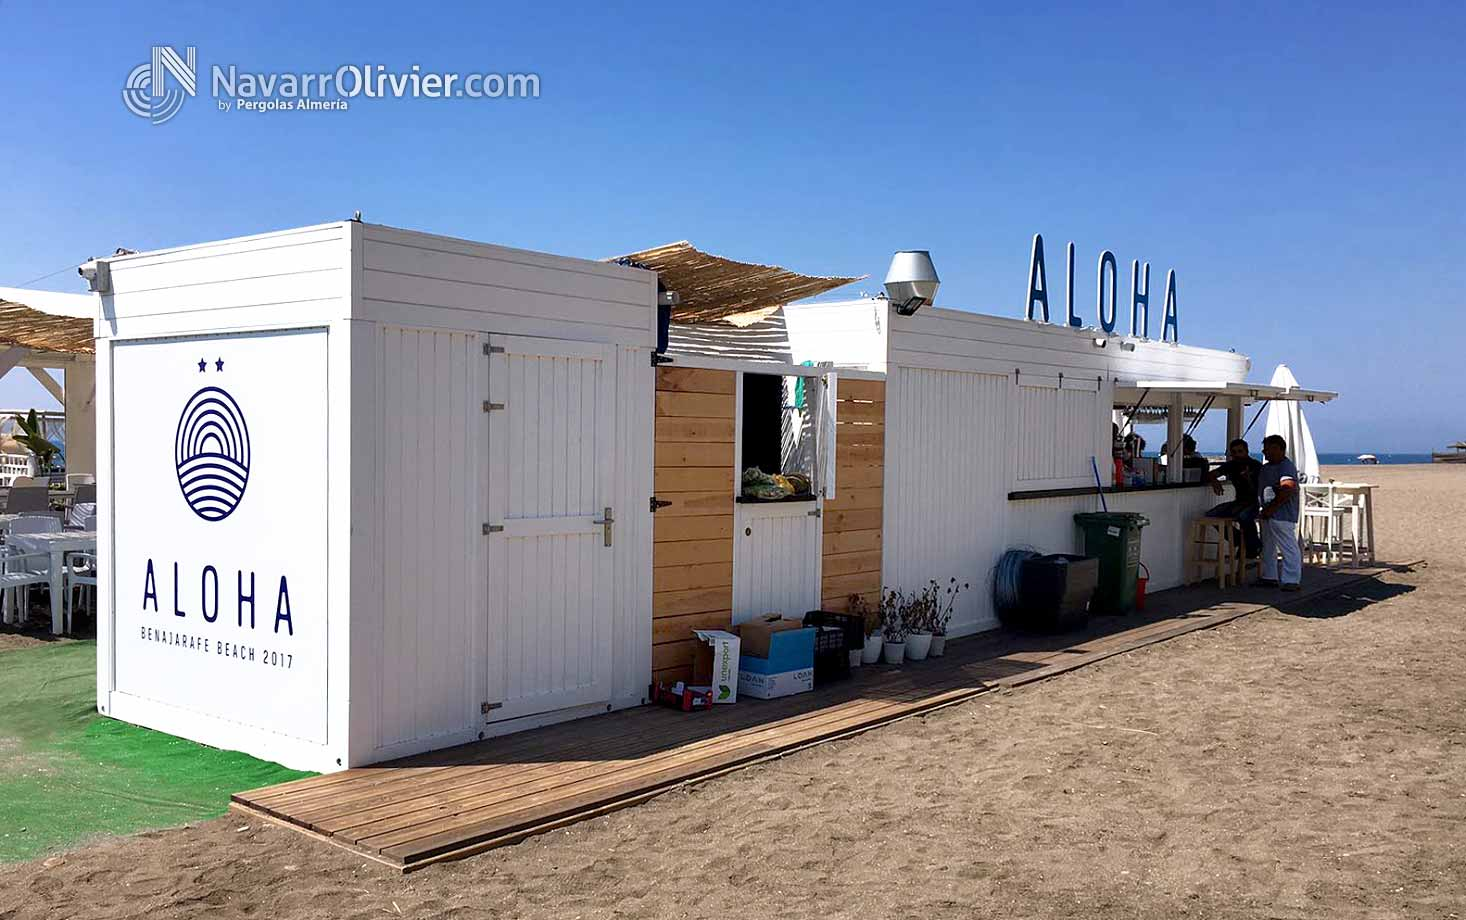 Aloha playa Club de playa desmontable Malaga